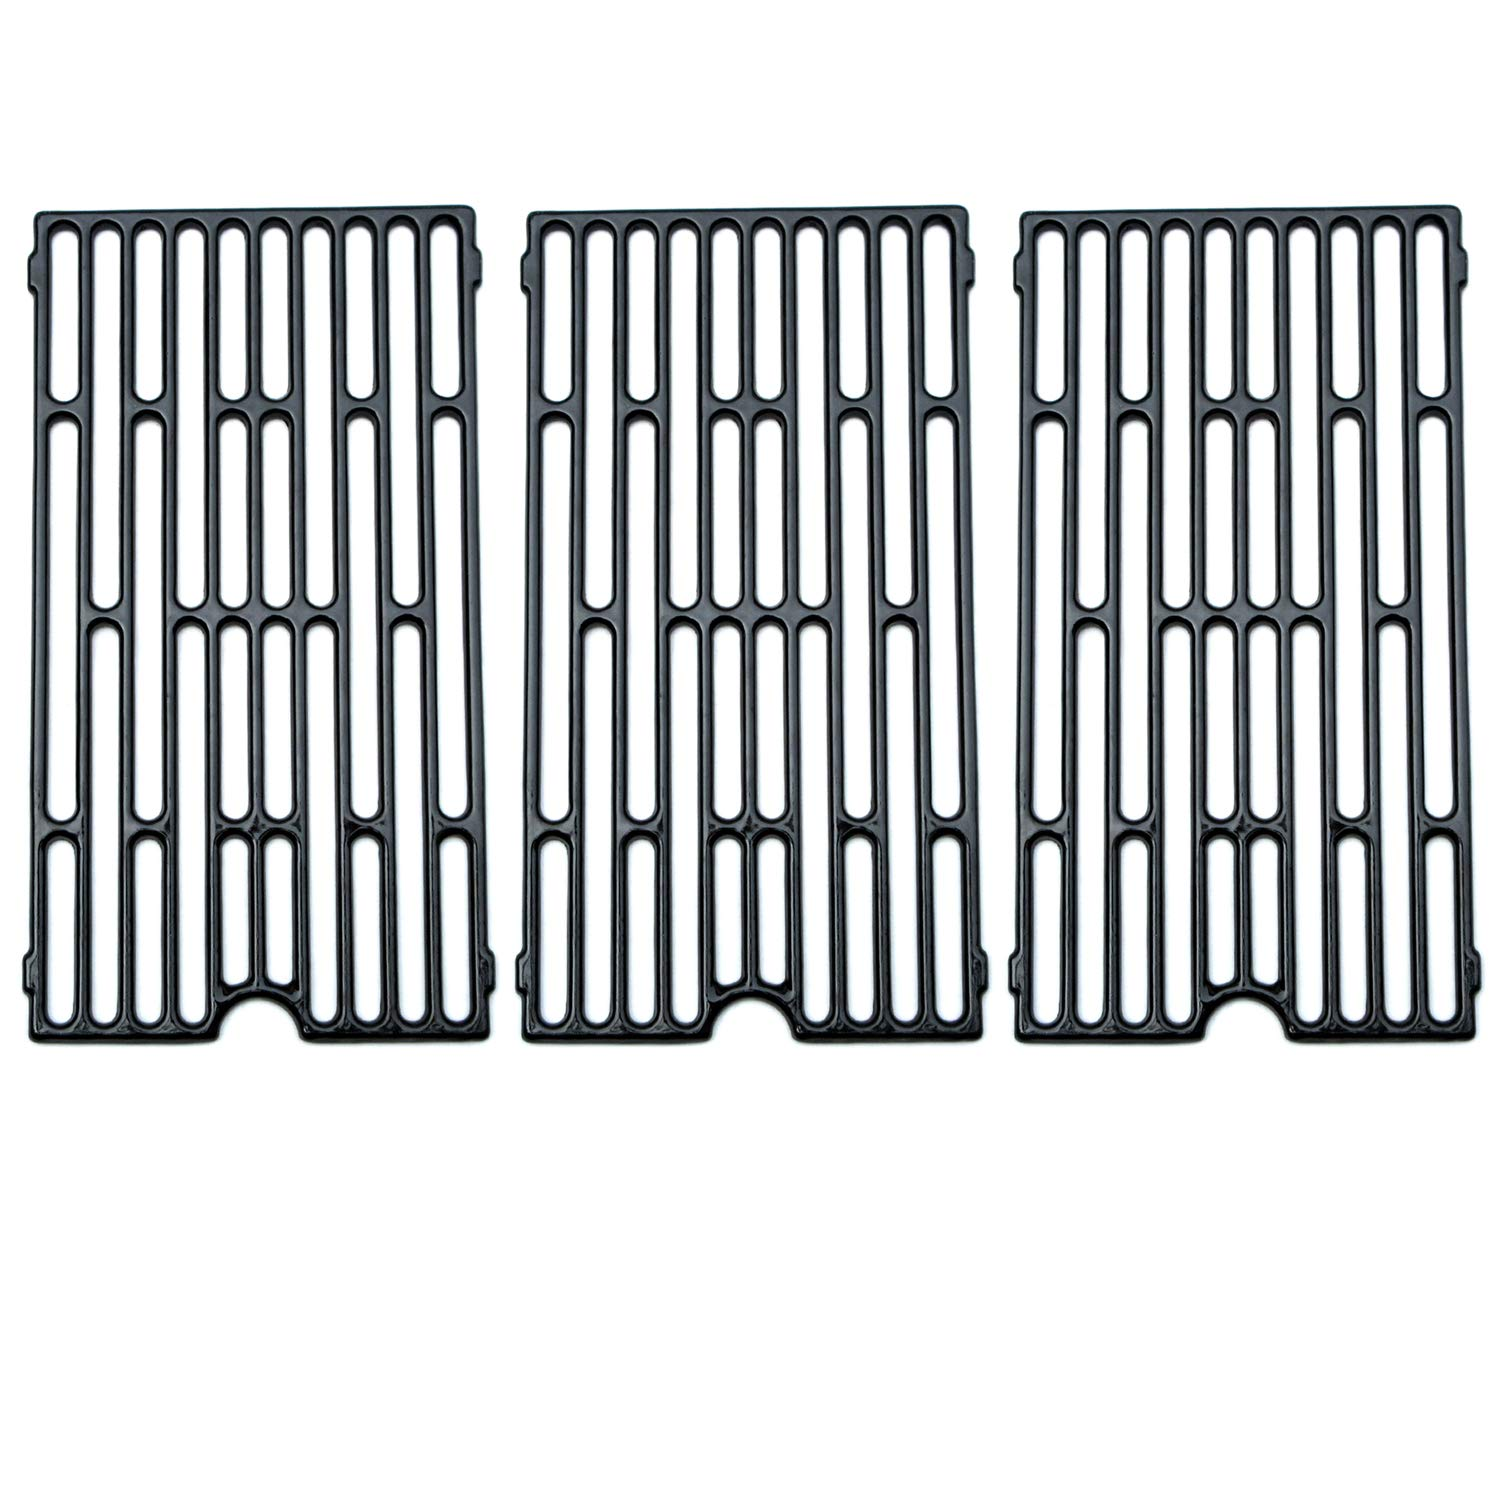 3 Direct store Parts DC105 Porcelain Cast Iron Cooking grid Replacement Vermont Castings Chargriller Jenn Air Gas Grill 3-pack